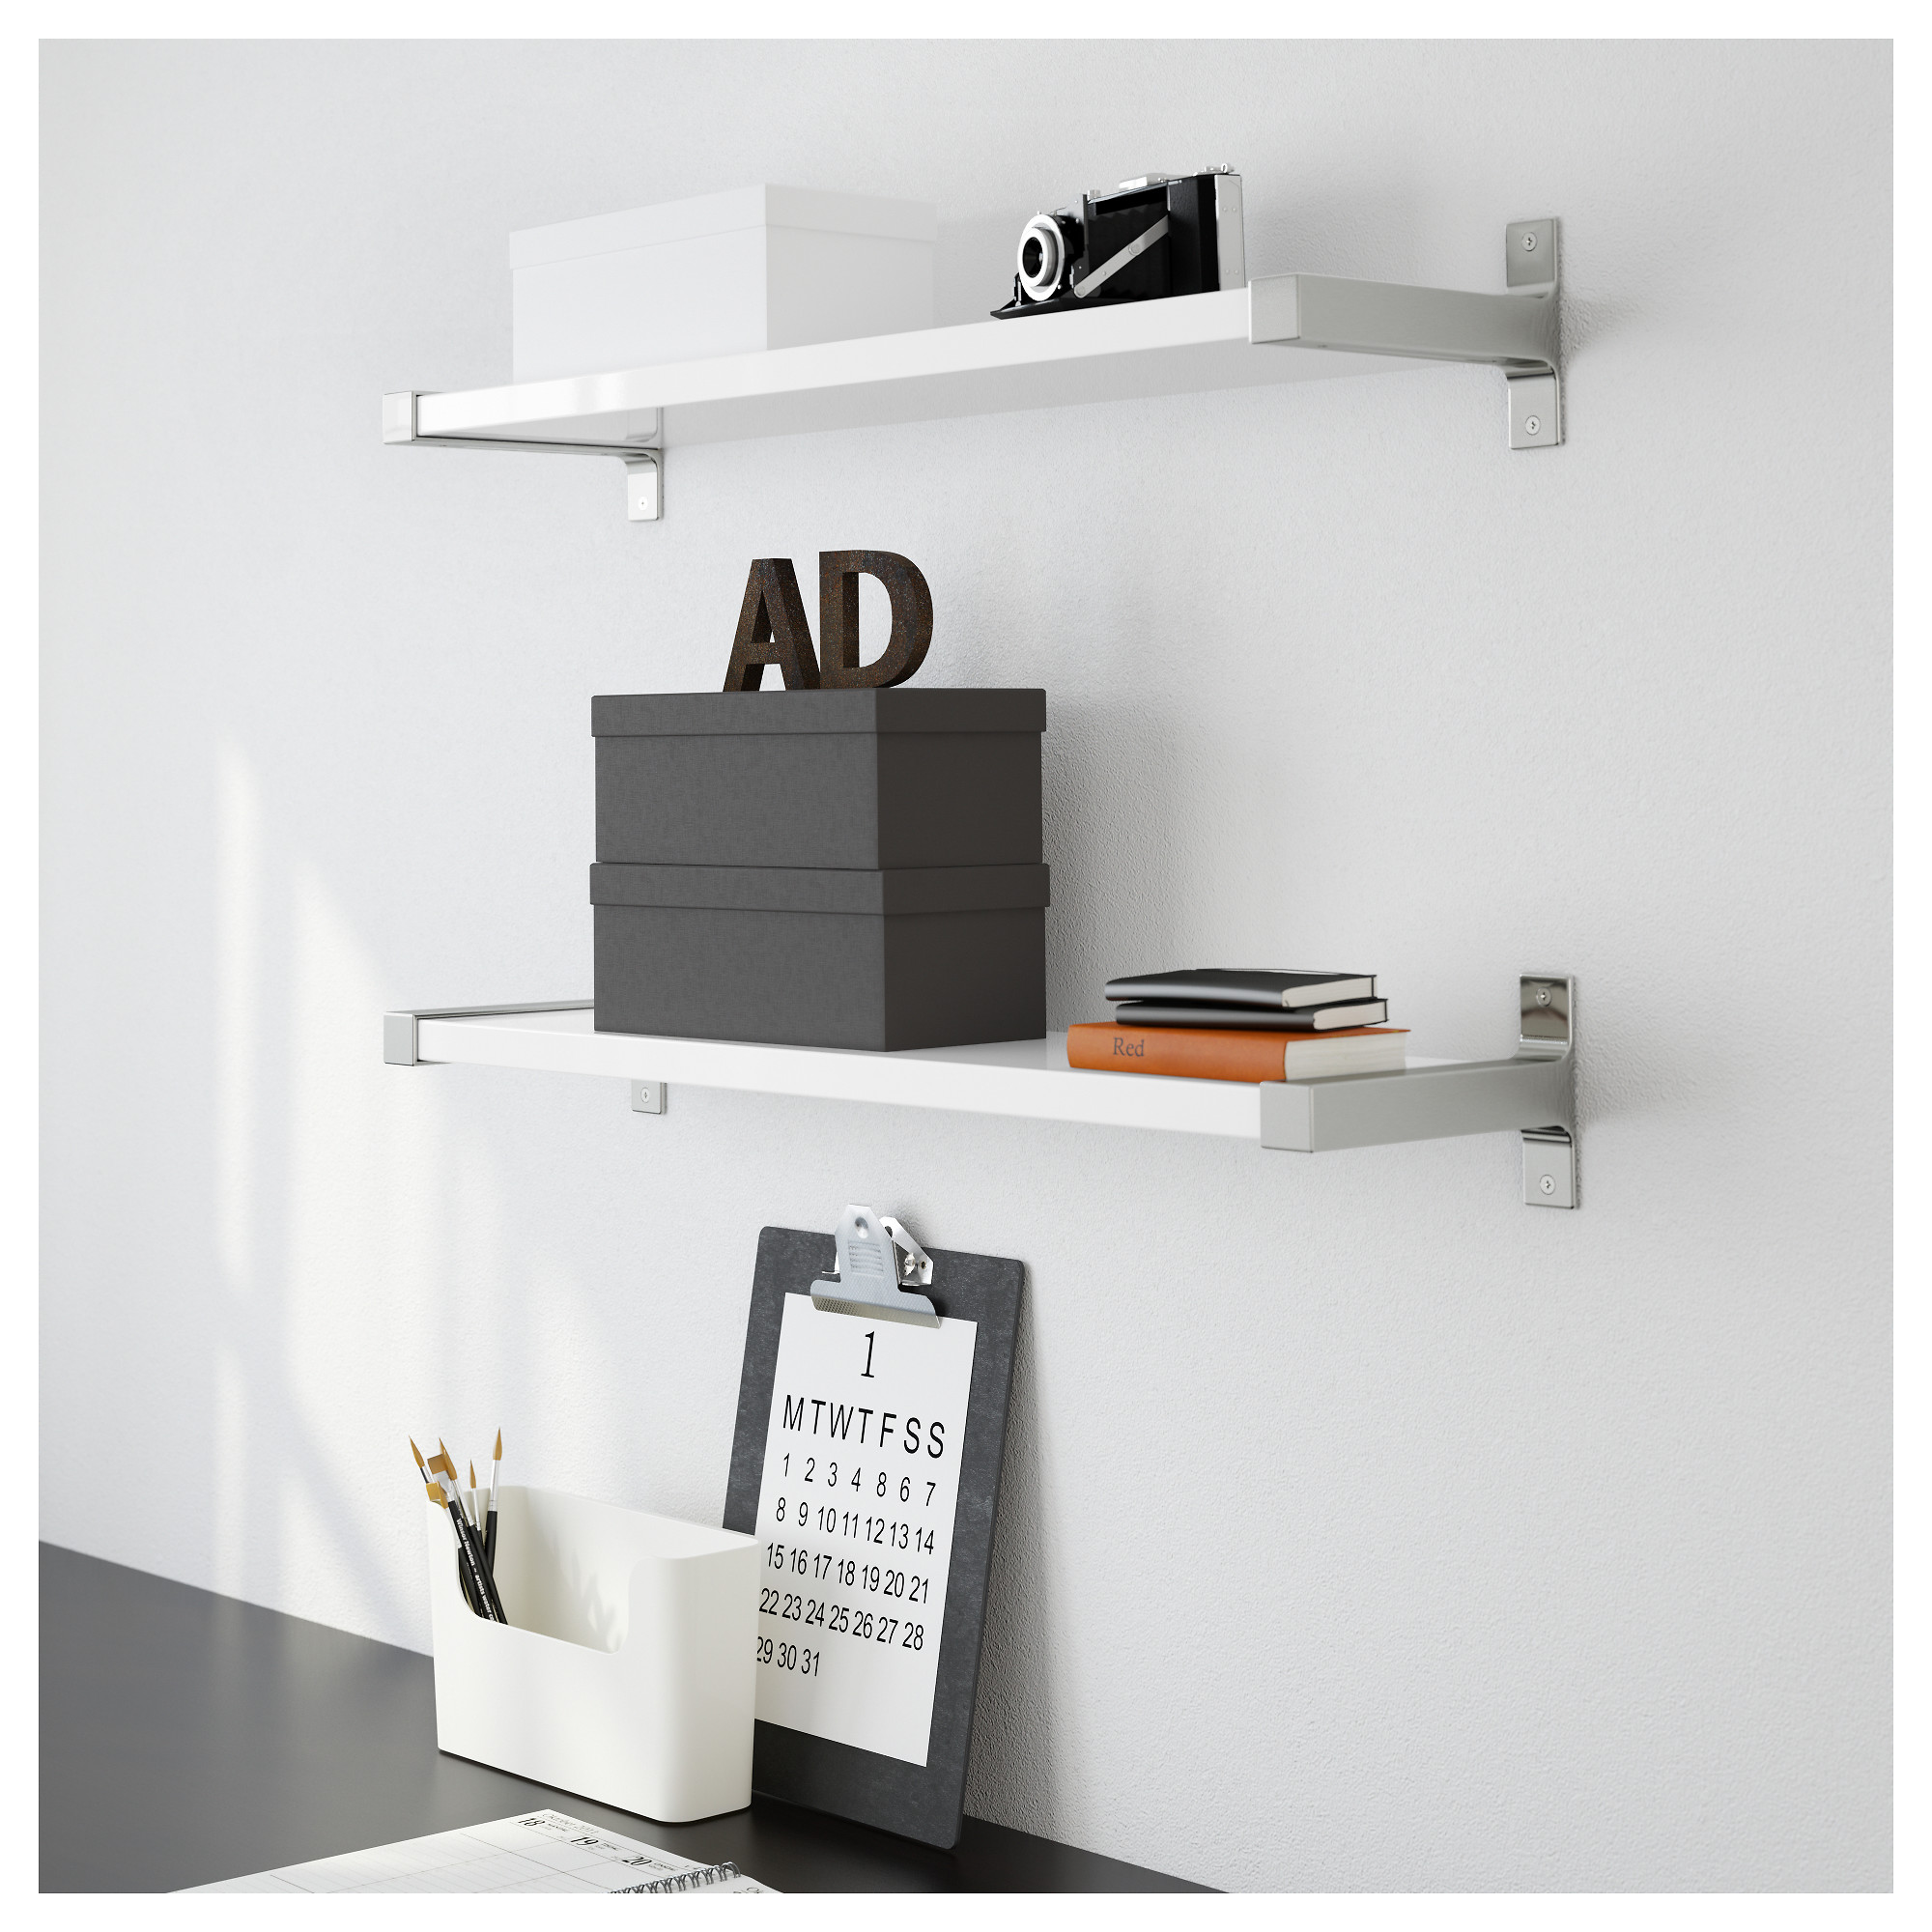 Ekby tony ekby bjrnum wall shelf ikea amipublicfo Image collections